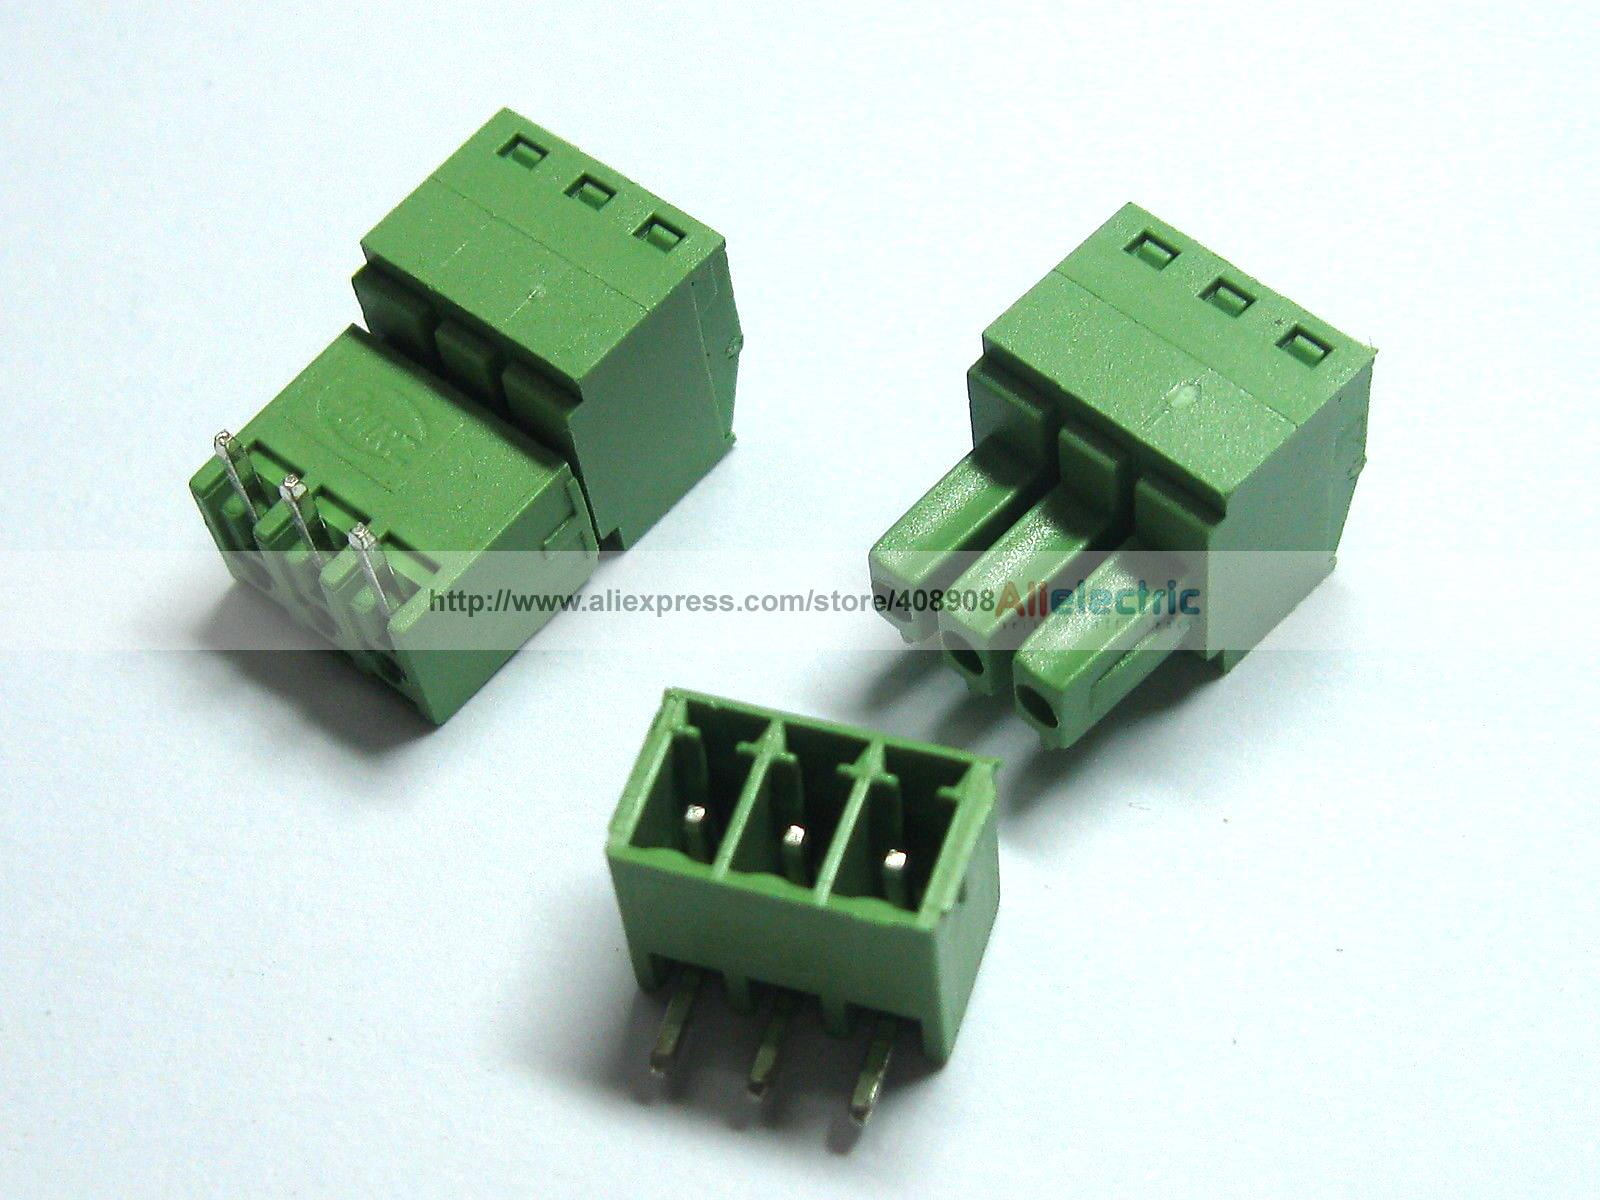 150 Pcs Screw Terminal Block Connector 3.5mm Angle 3 Pin Green Pluggable  Type -in Terminal Blocks from Home Improvement on Aliexpress.com | Alibaba  Group